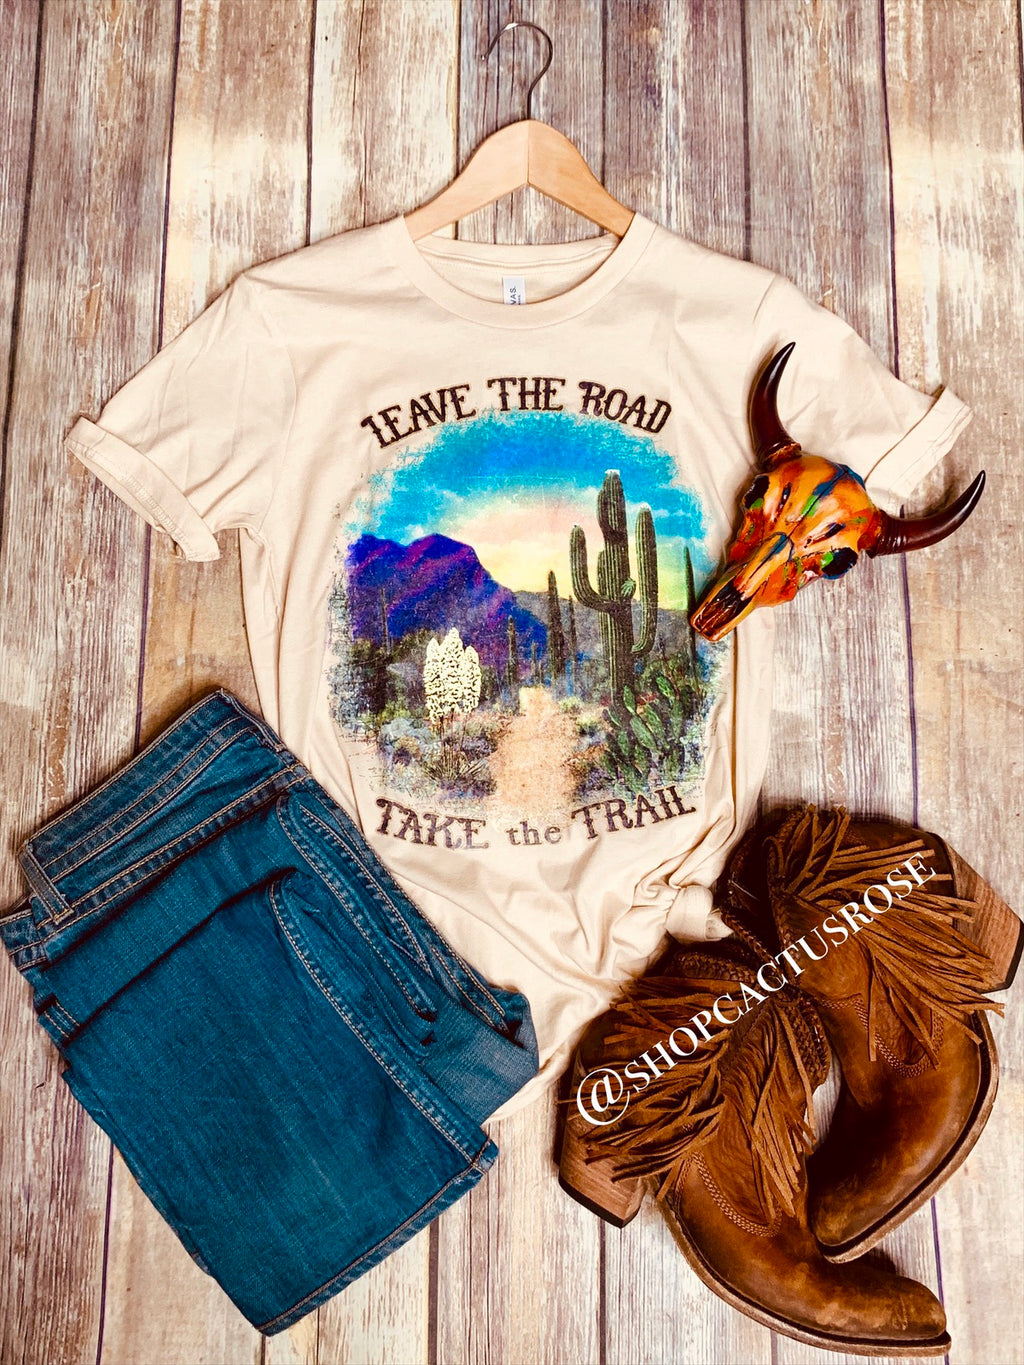 Take The Trail Tee